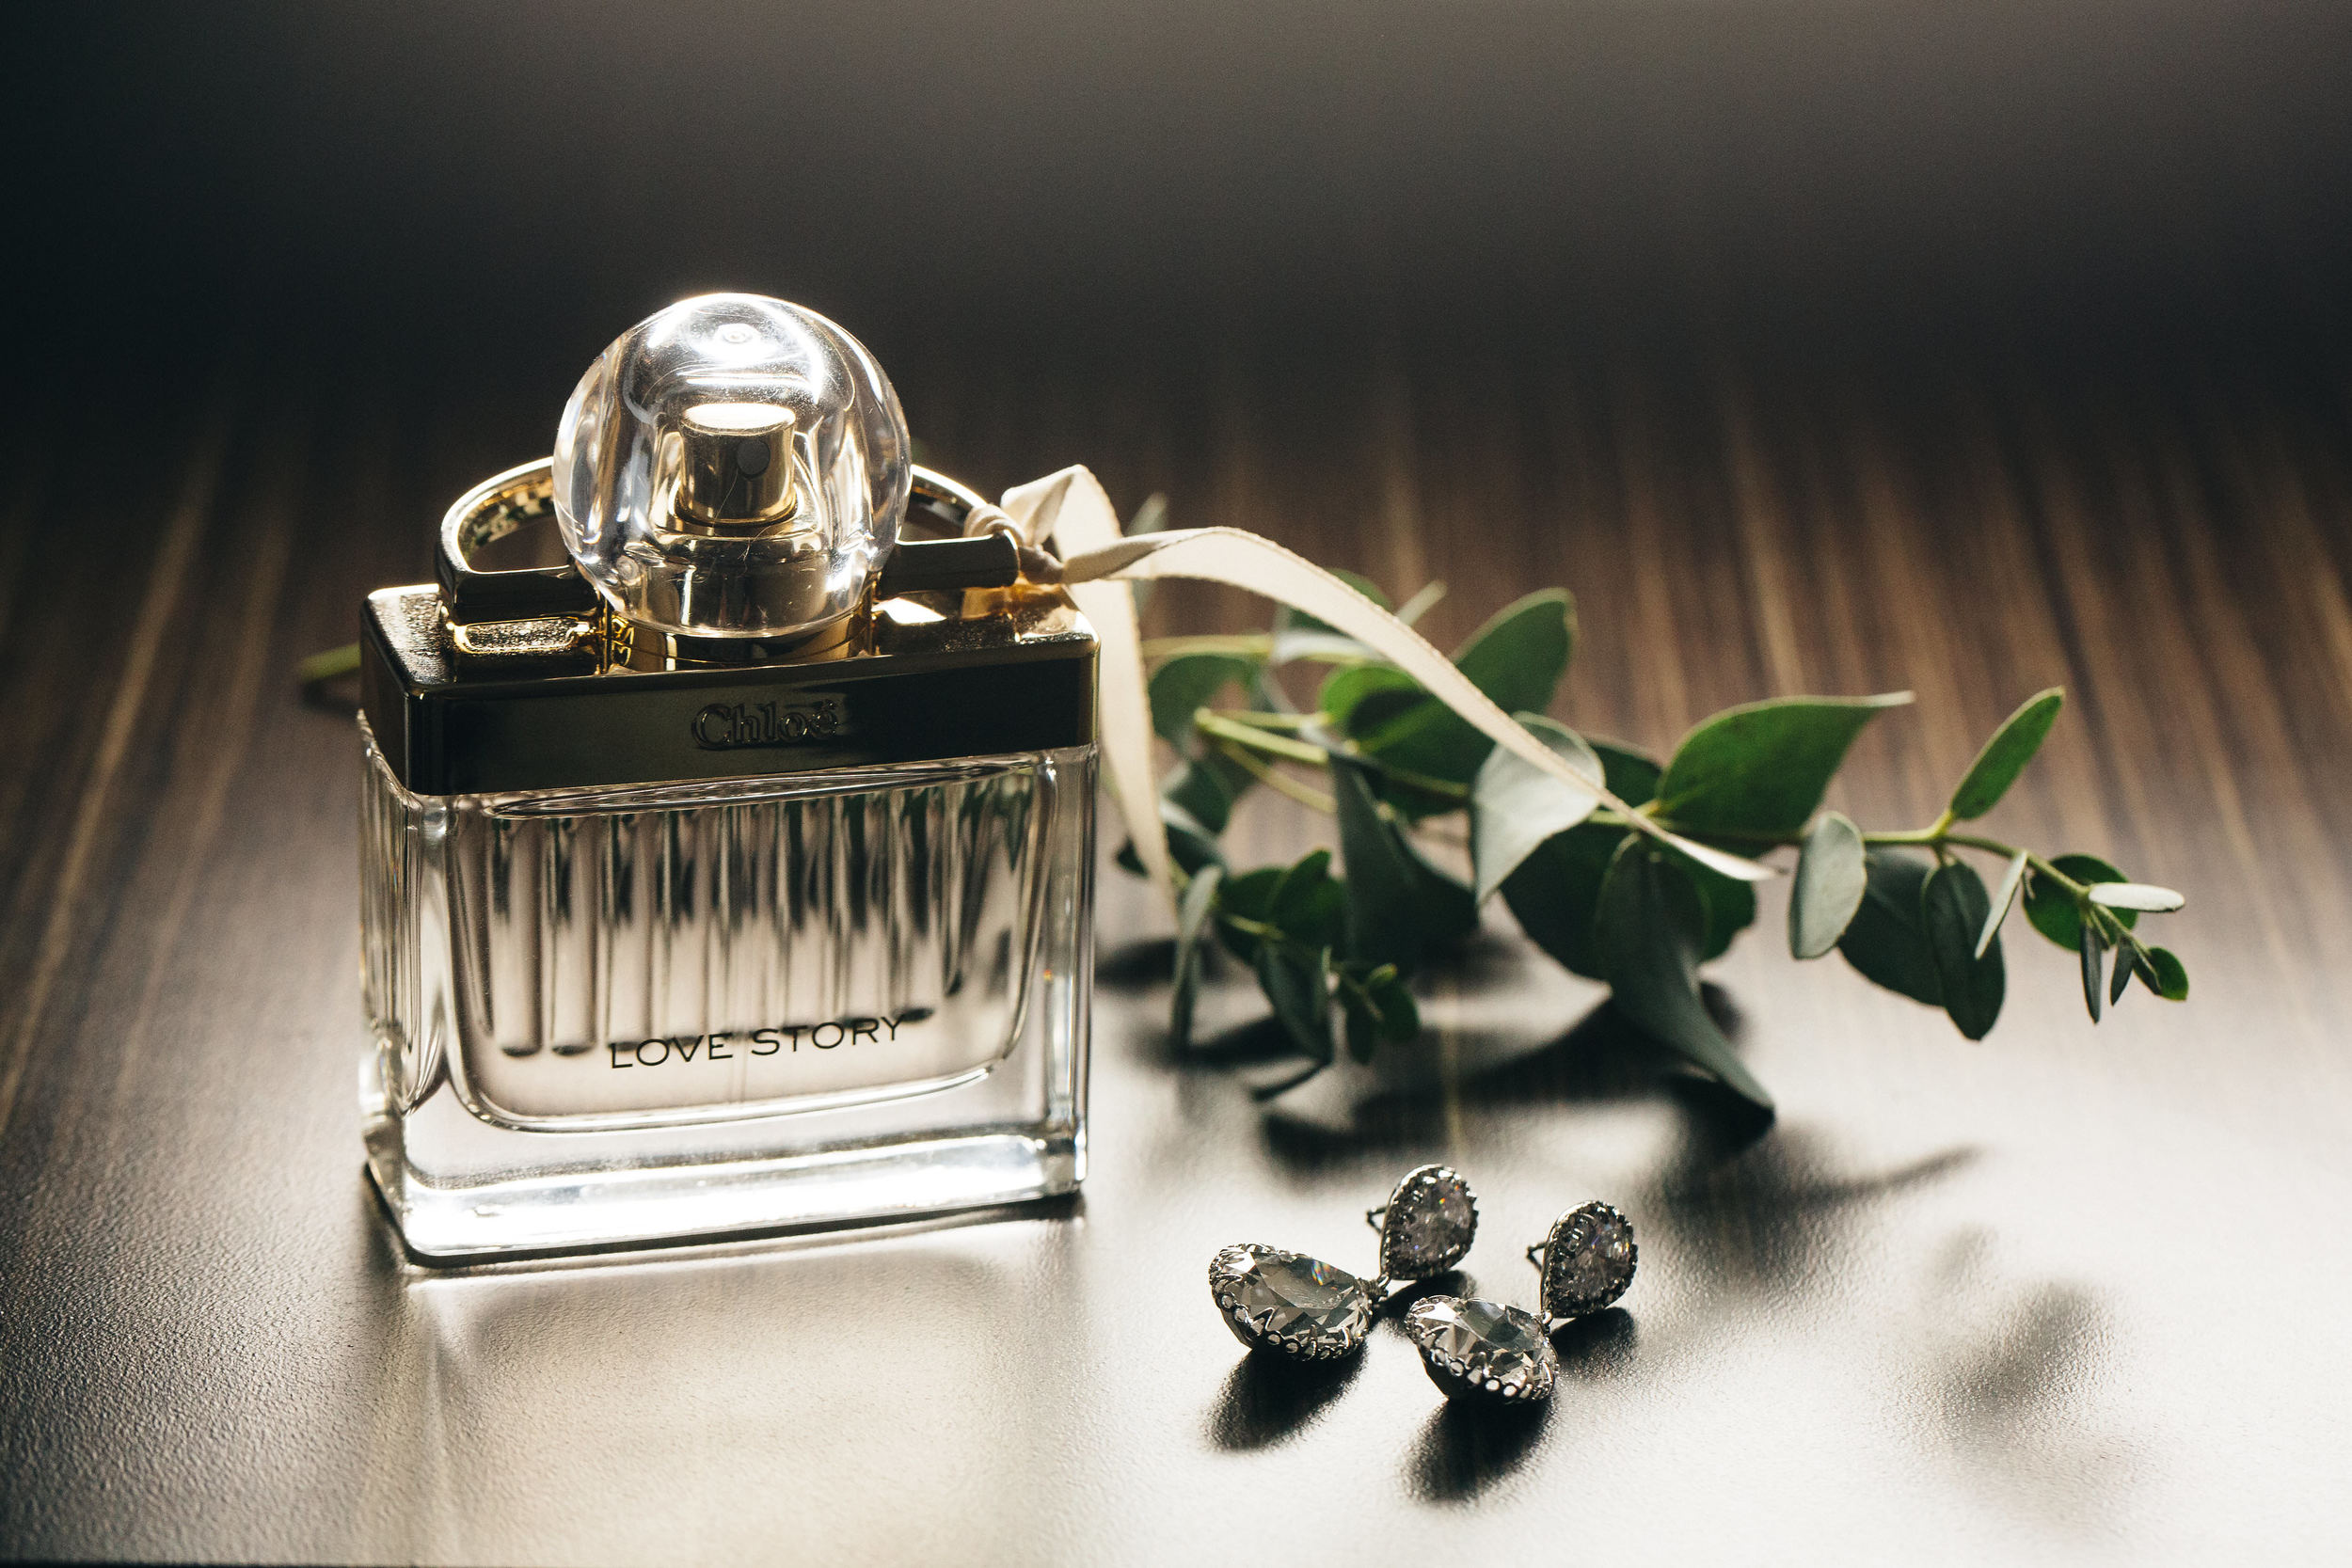 Brides perfume bottle and ear rings on wedding day.